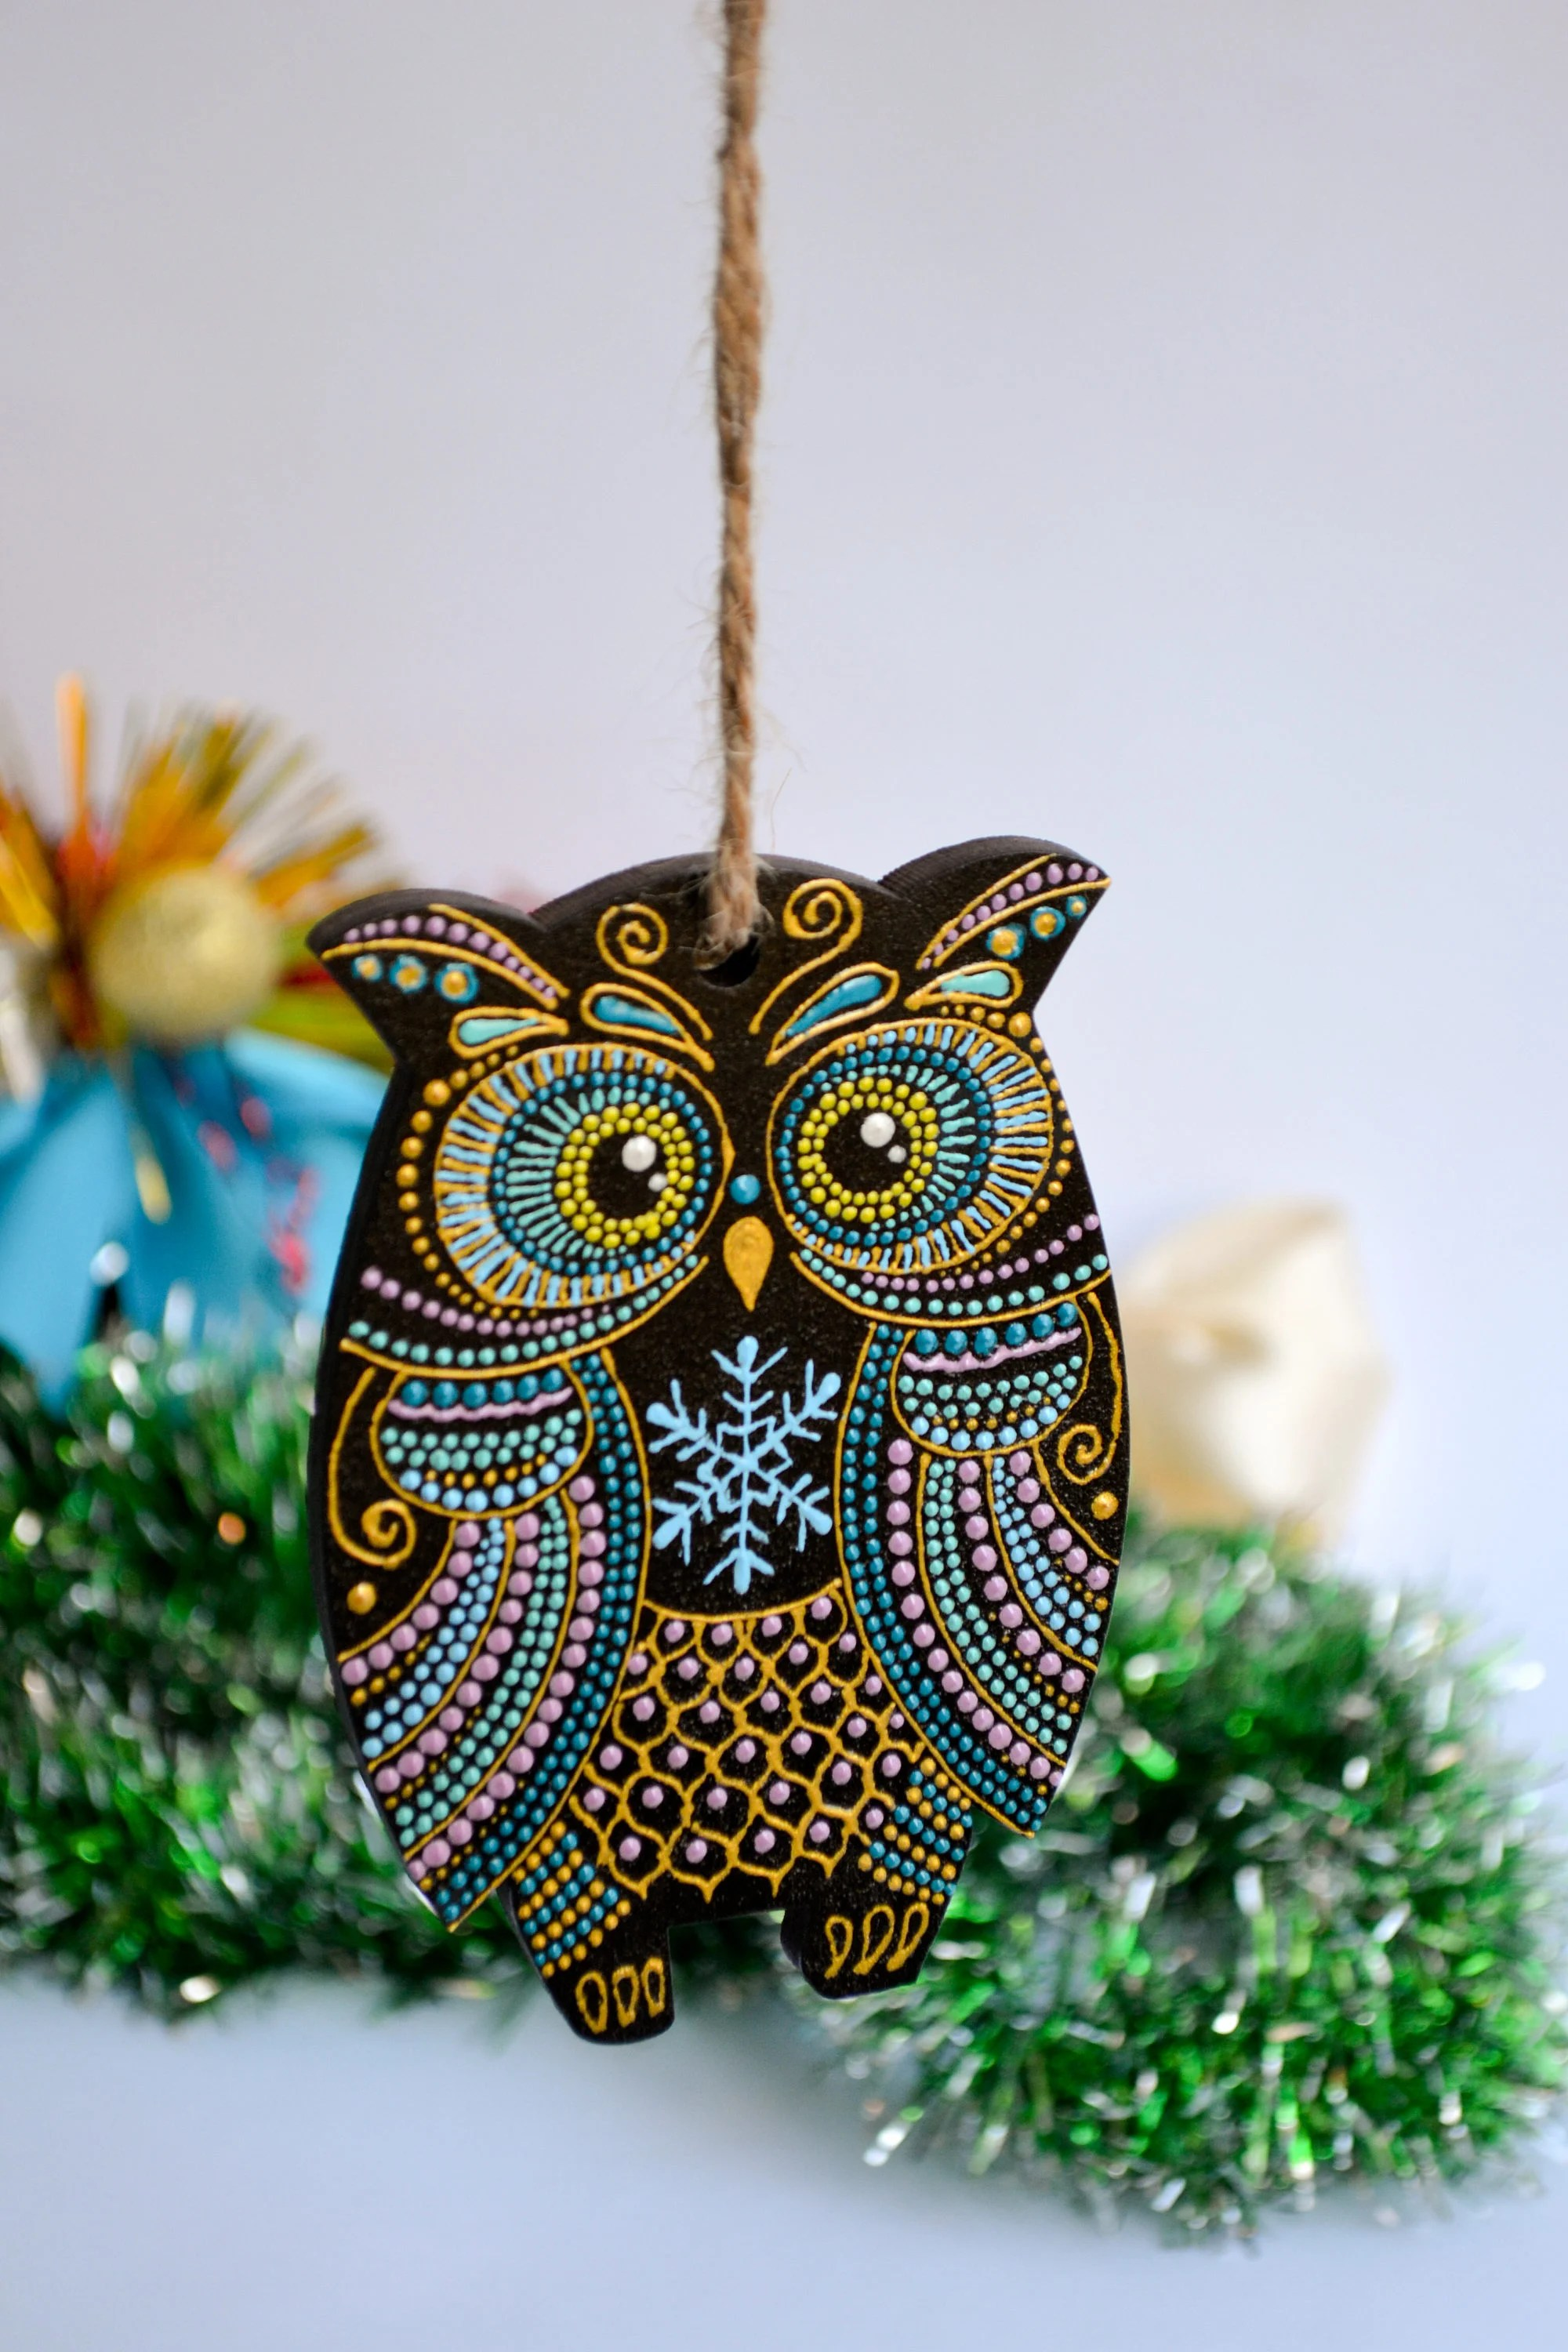 Cute Owl Decor Christmas Owl Ornament Personalized Wooden Owl Cute Owl Decor Christmas Birds Painted Wood Owl Xmas Owl Decoration Cute Tree Ornament